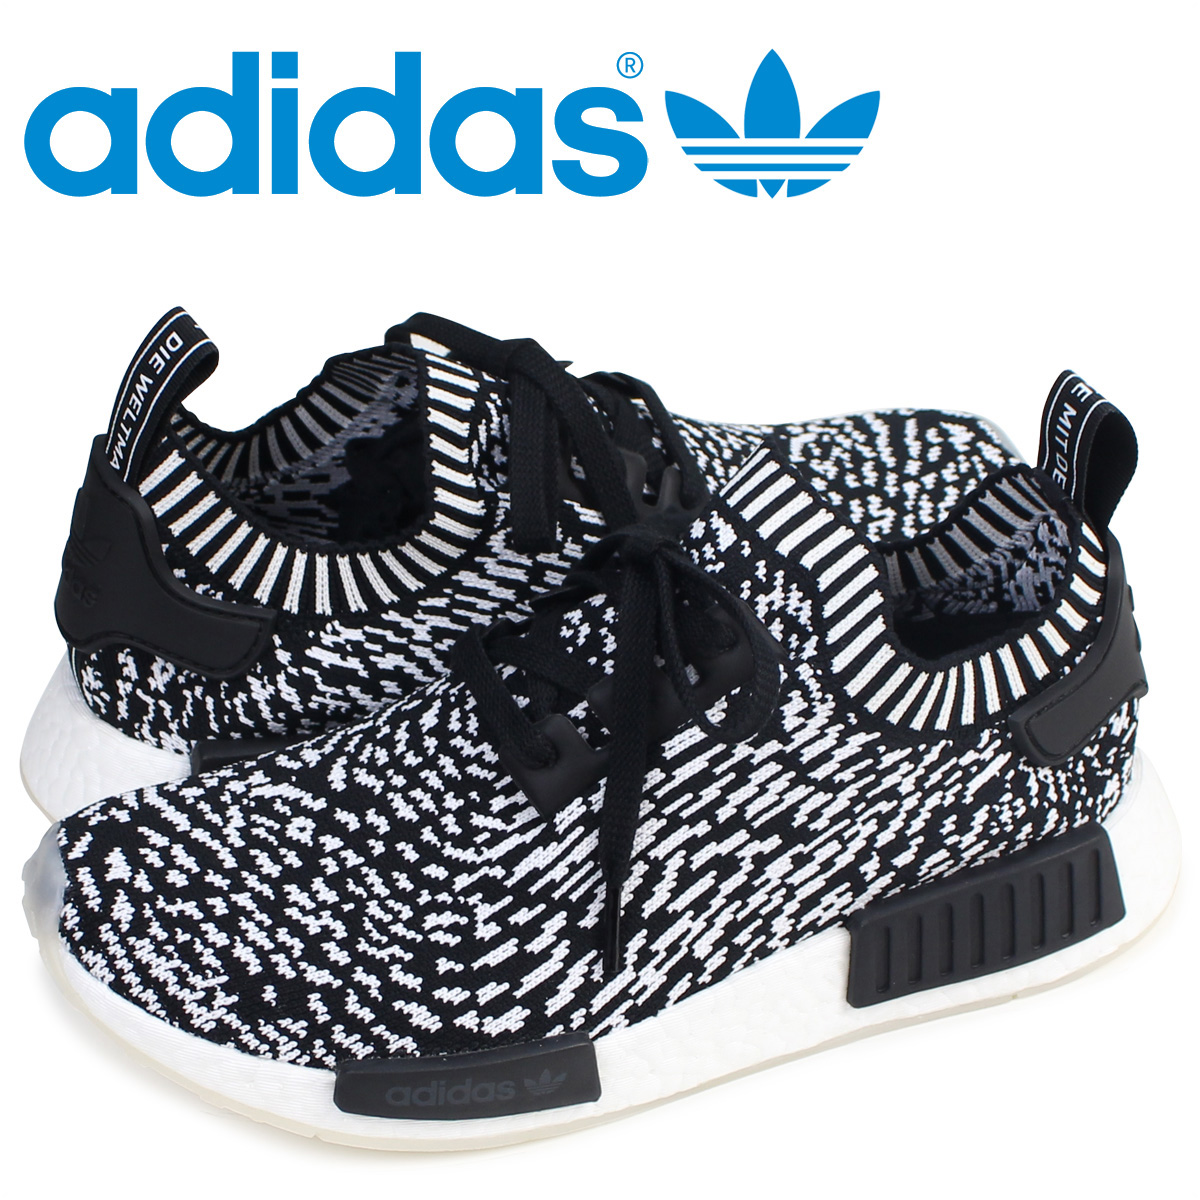 ed3345ff4 Whats up Sports  Adidas NMD R1 PK adidas originals sneakers N M D ...